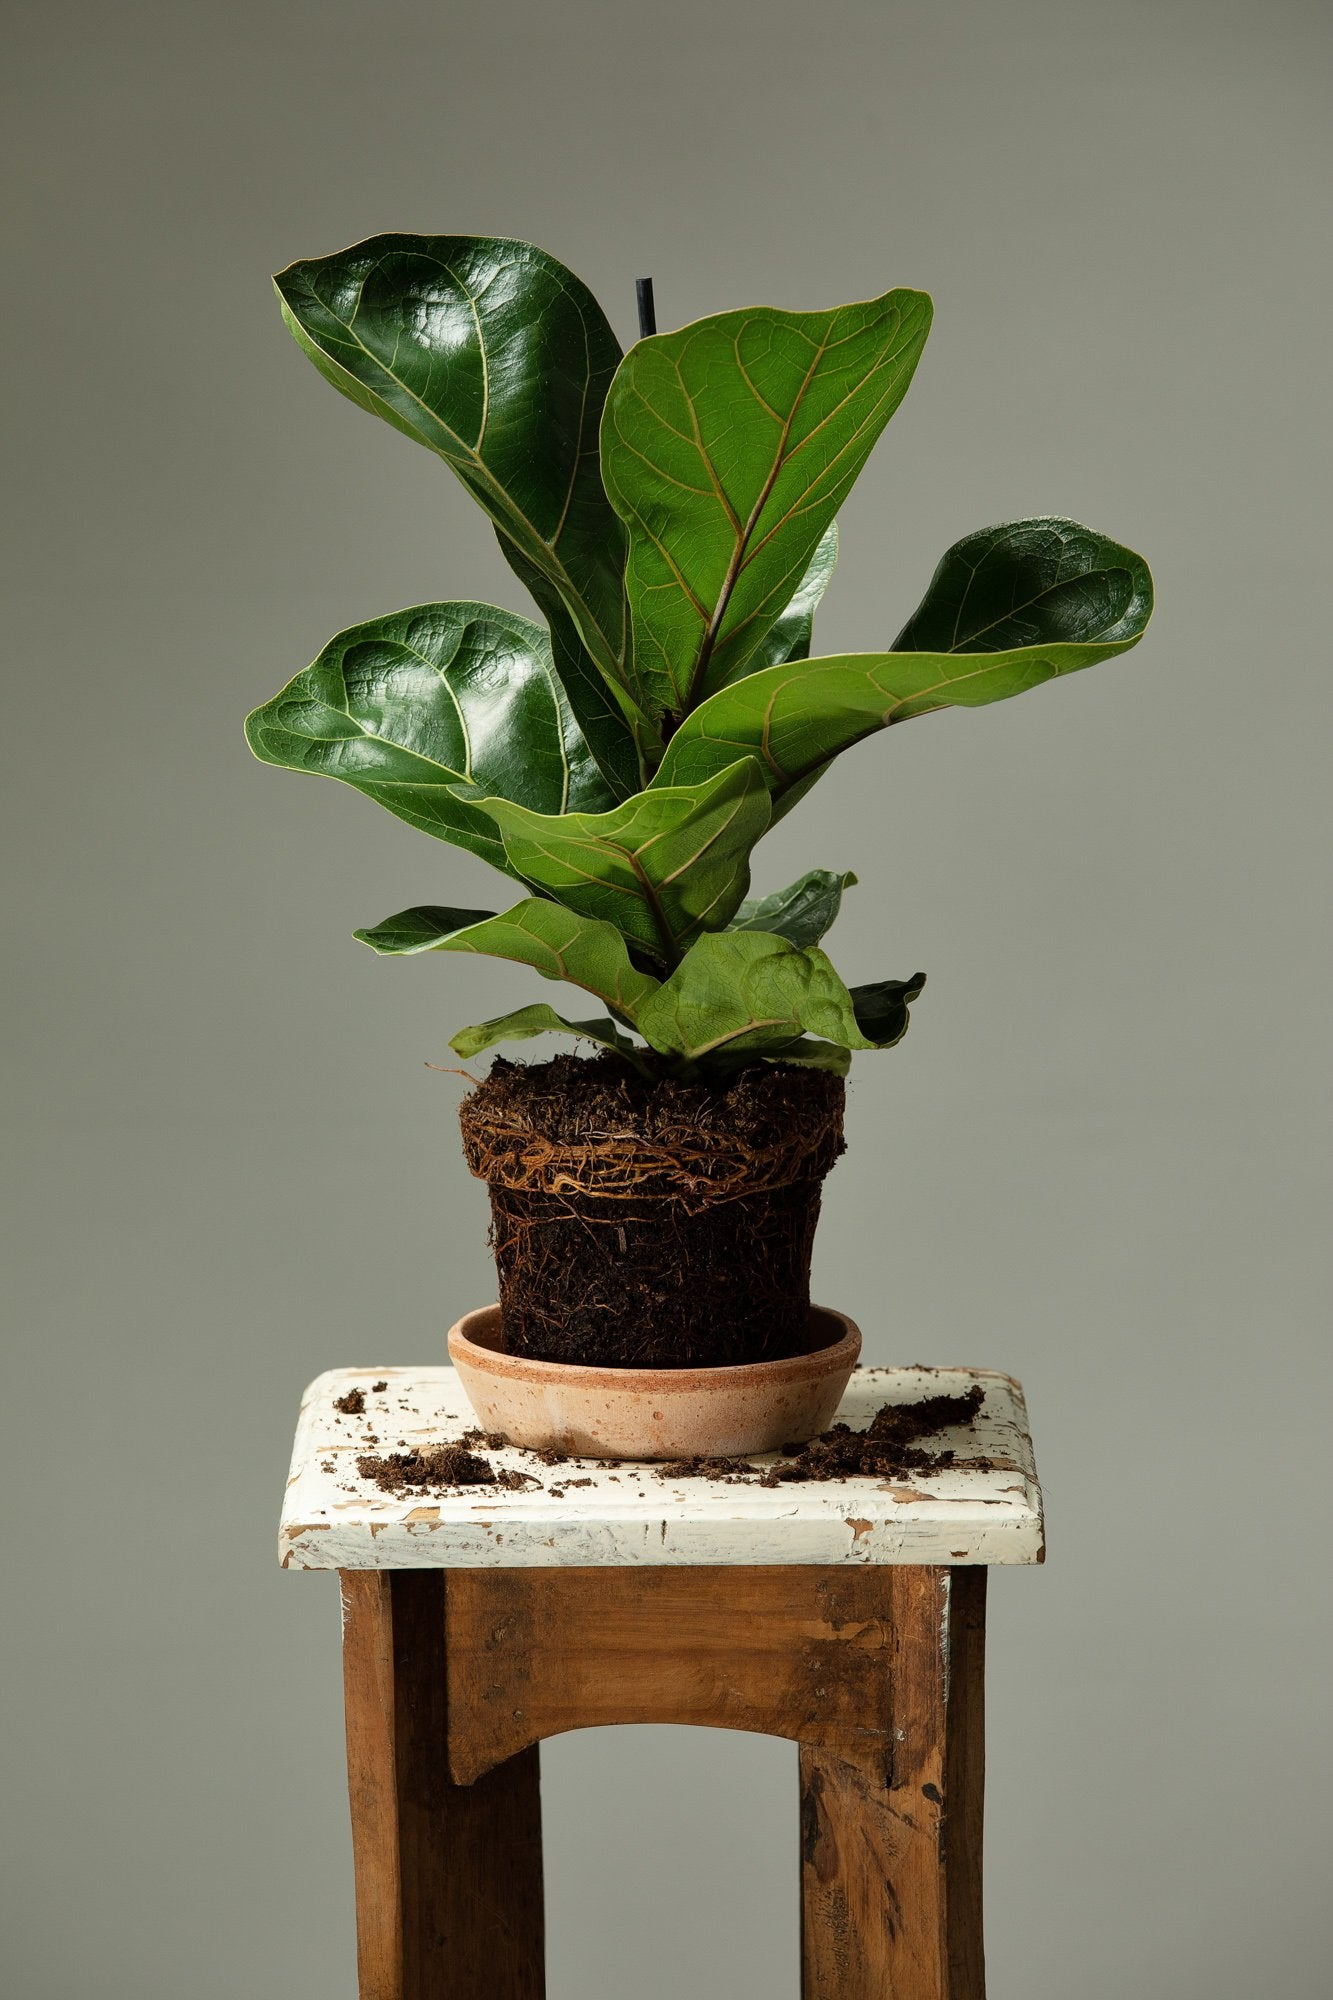 The Ficus Lyrata indoor houseplant, a popular houseplant in homes and offices.